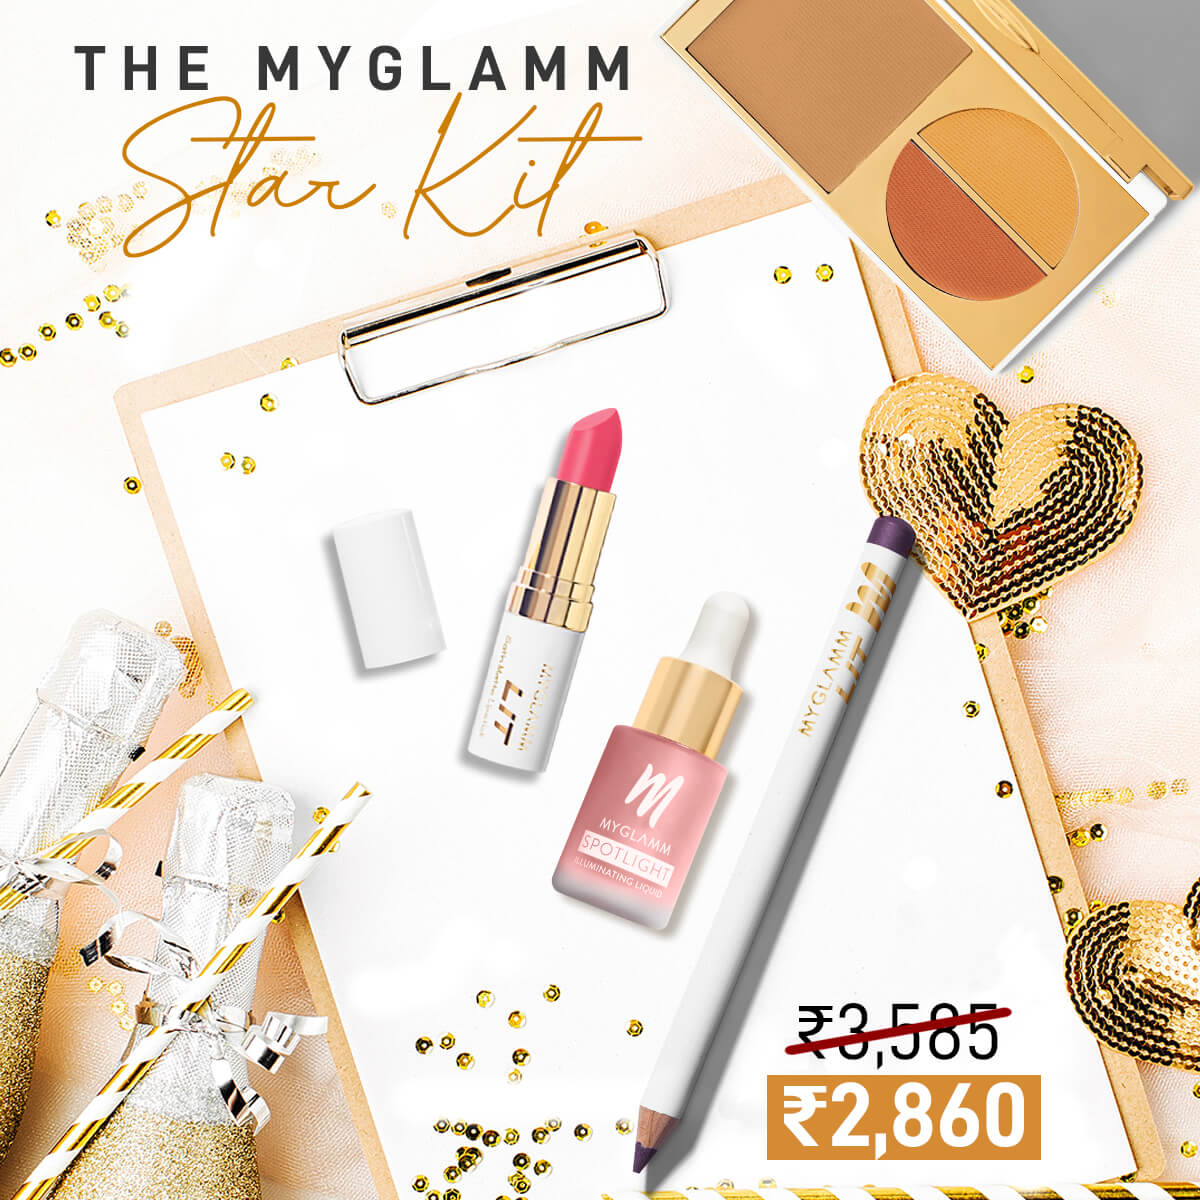 birthday-kit-the-myglamm-star-kit-1